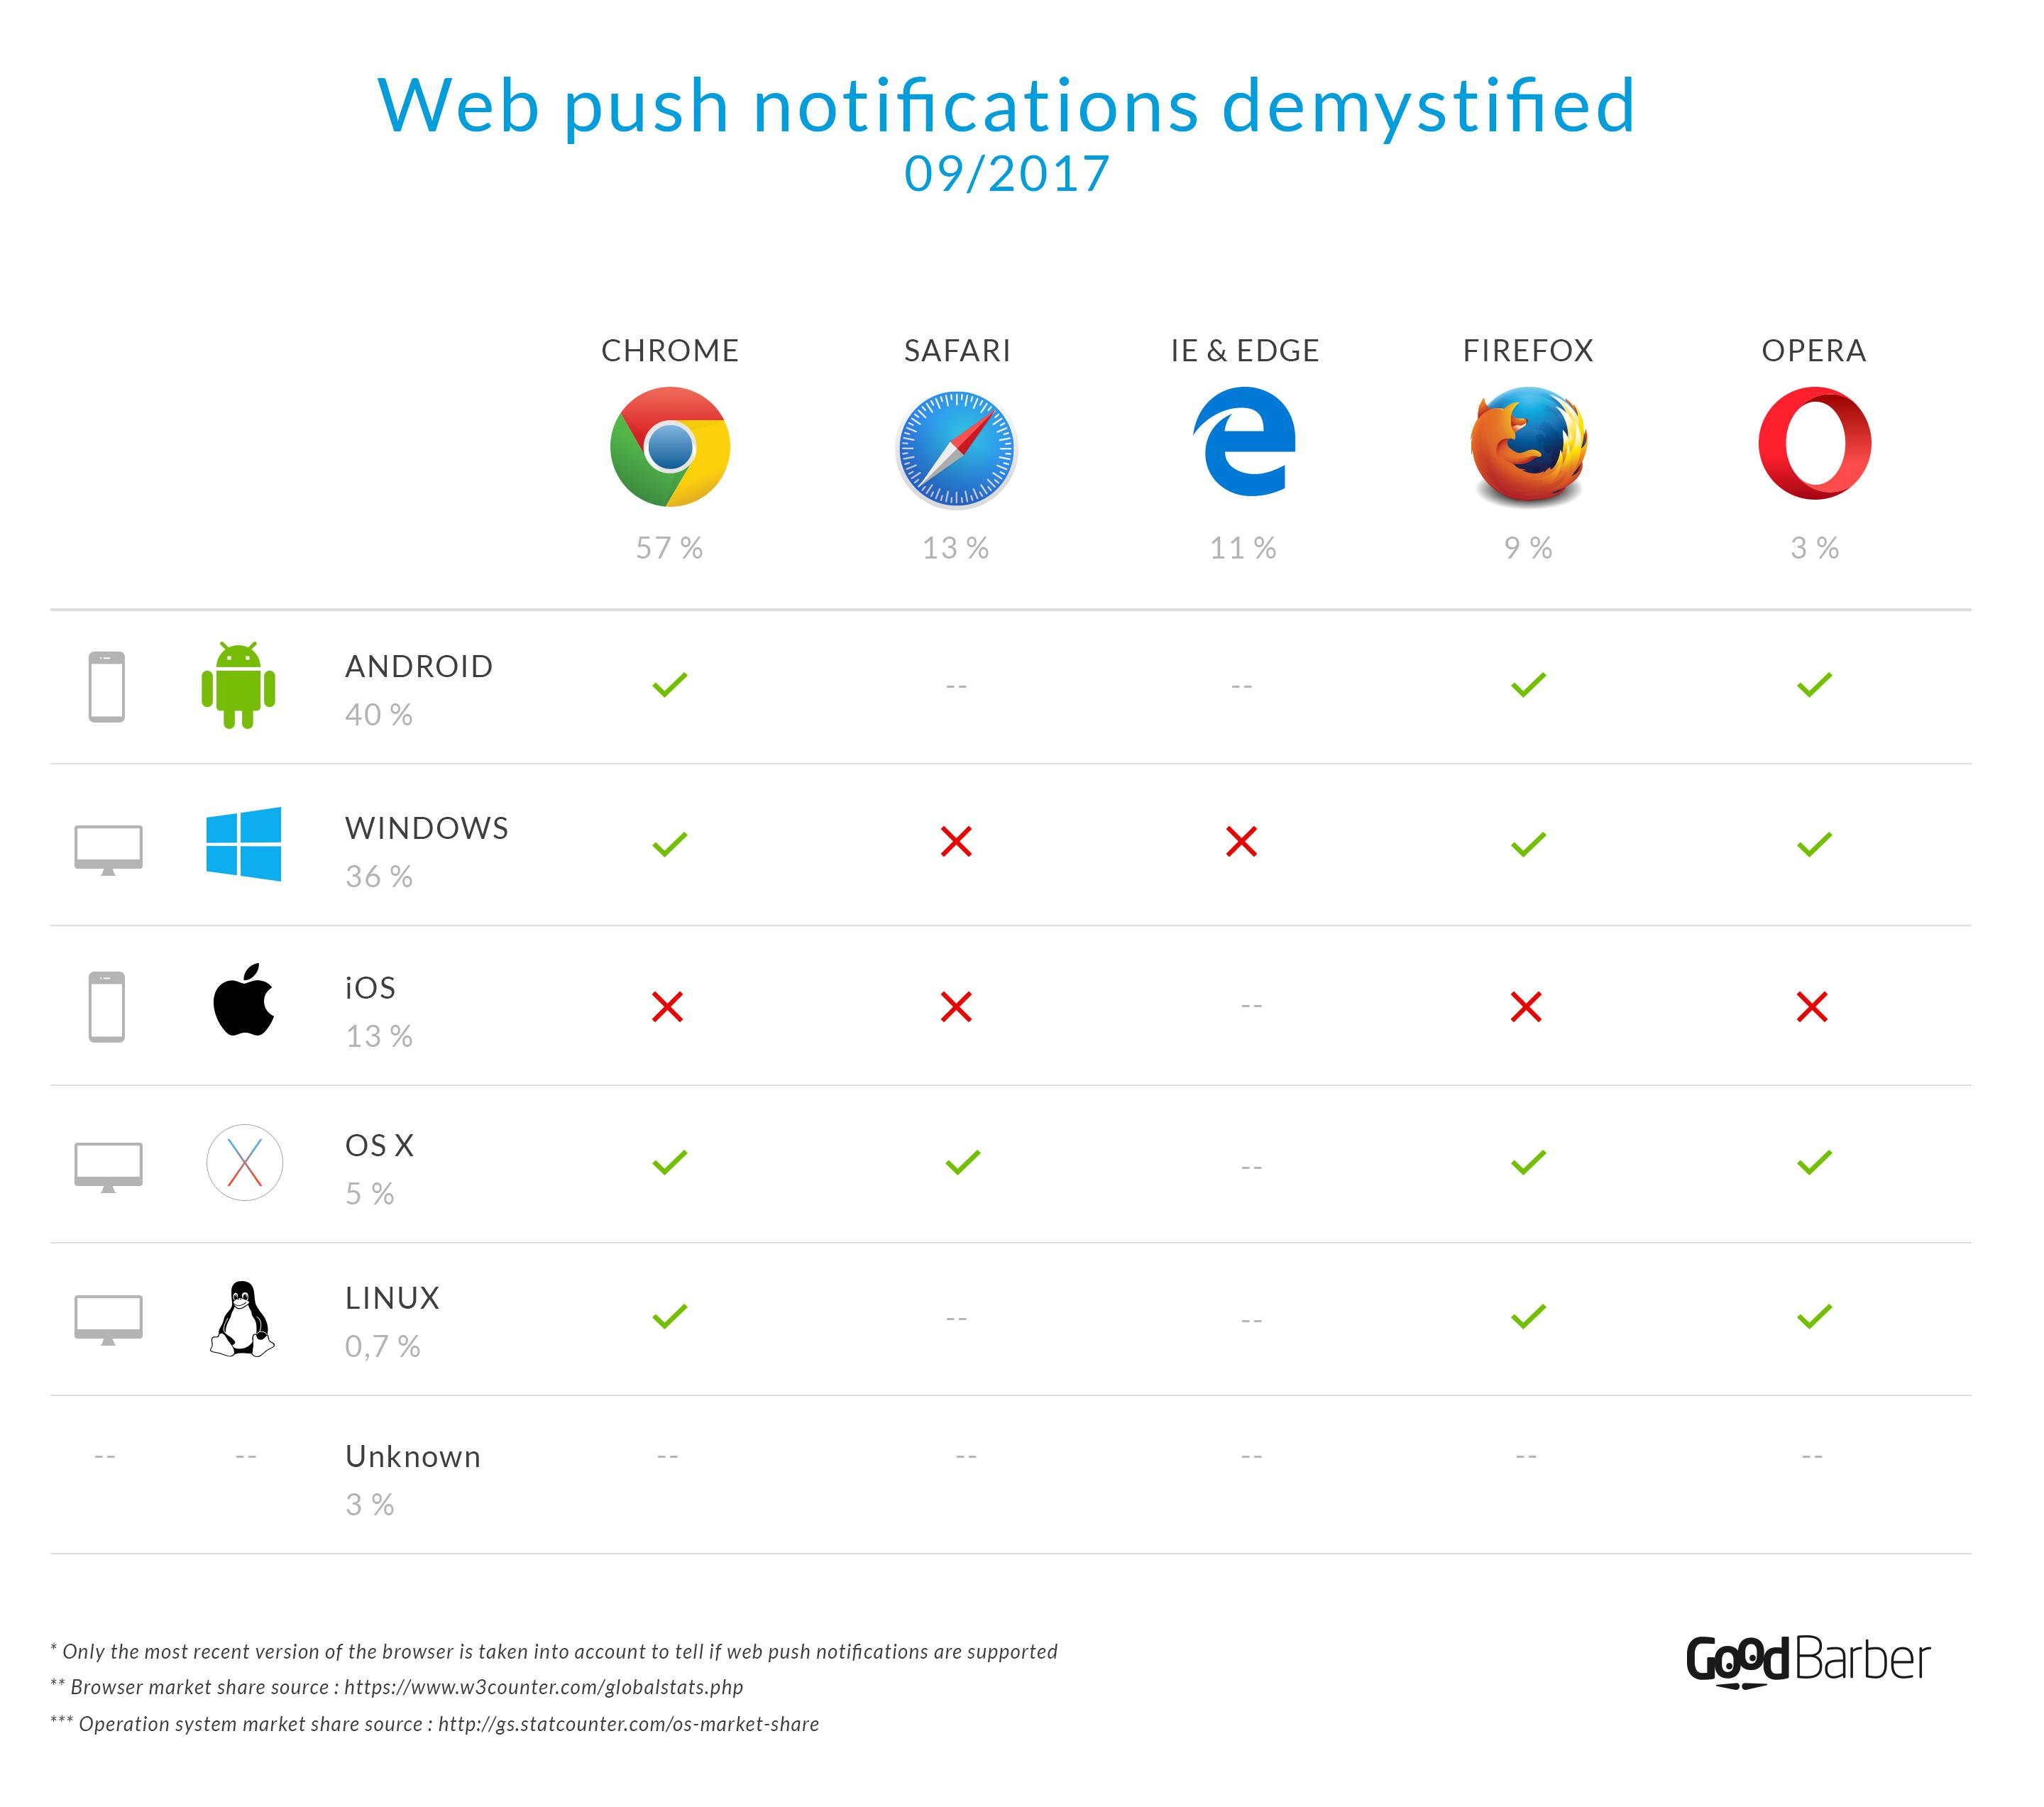 Notificações Push Web (desmistificadas)